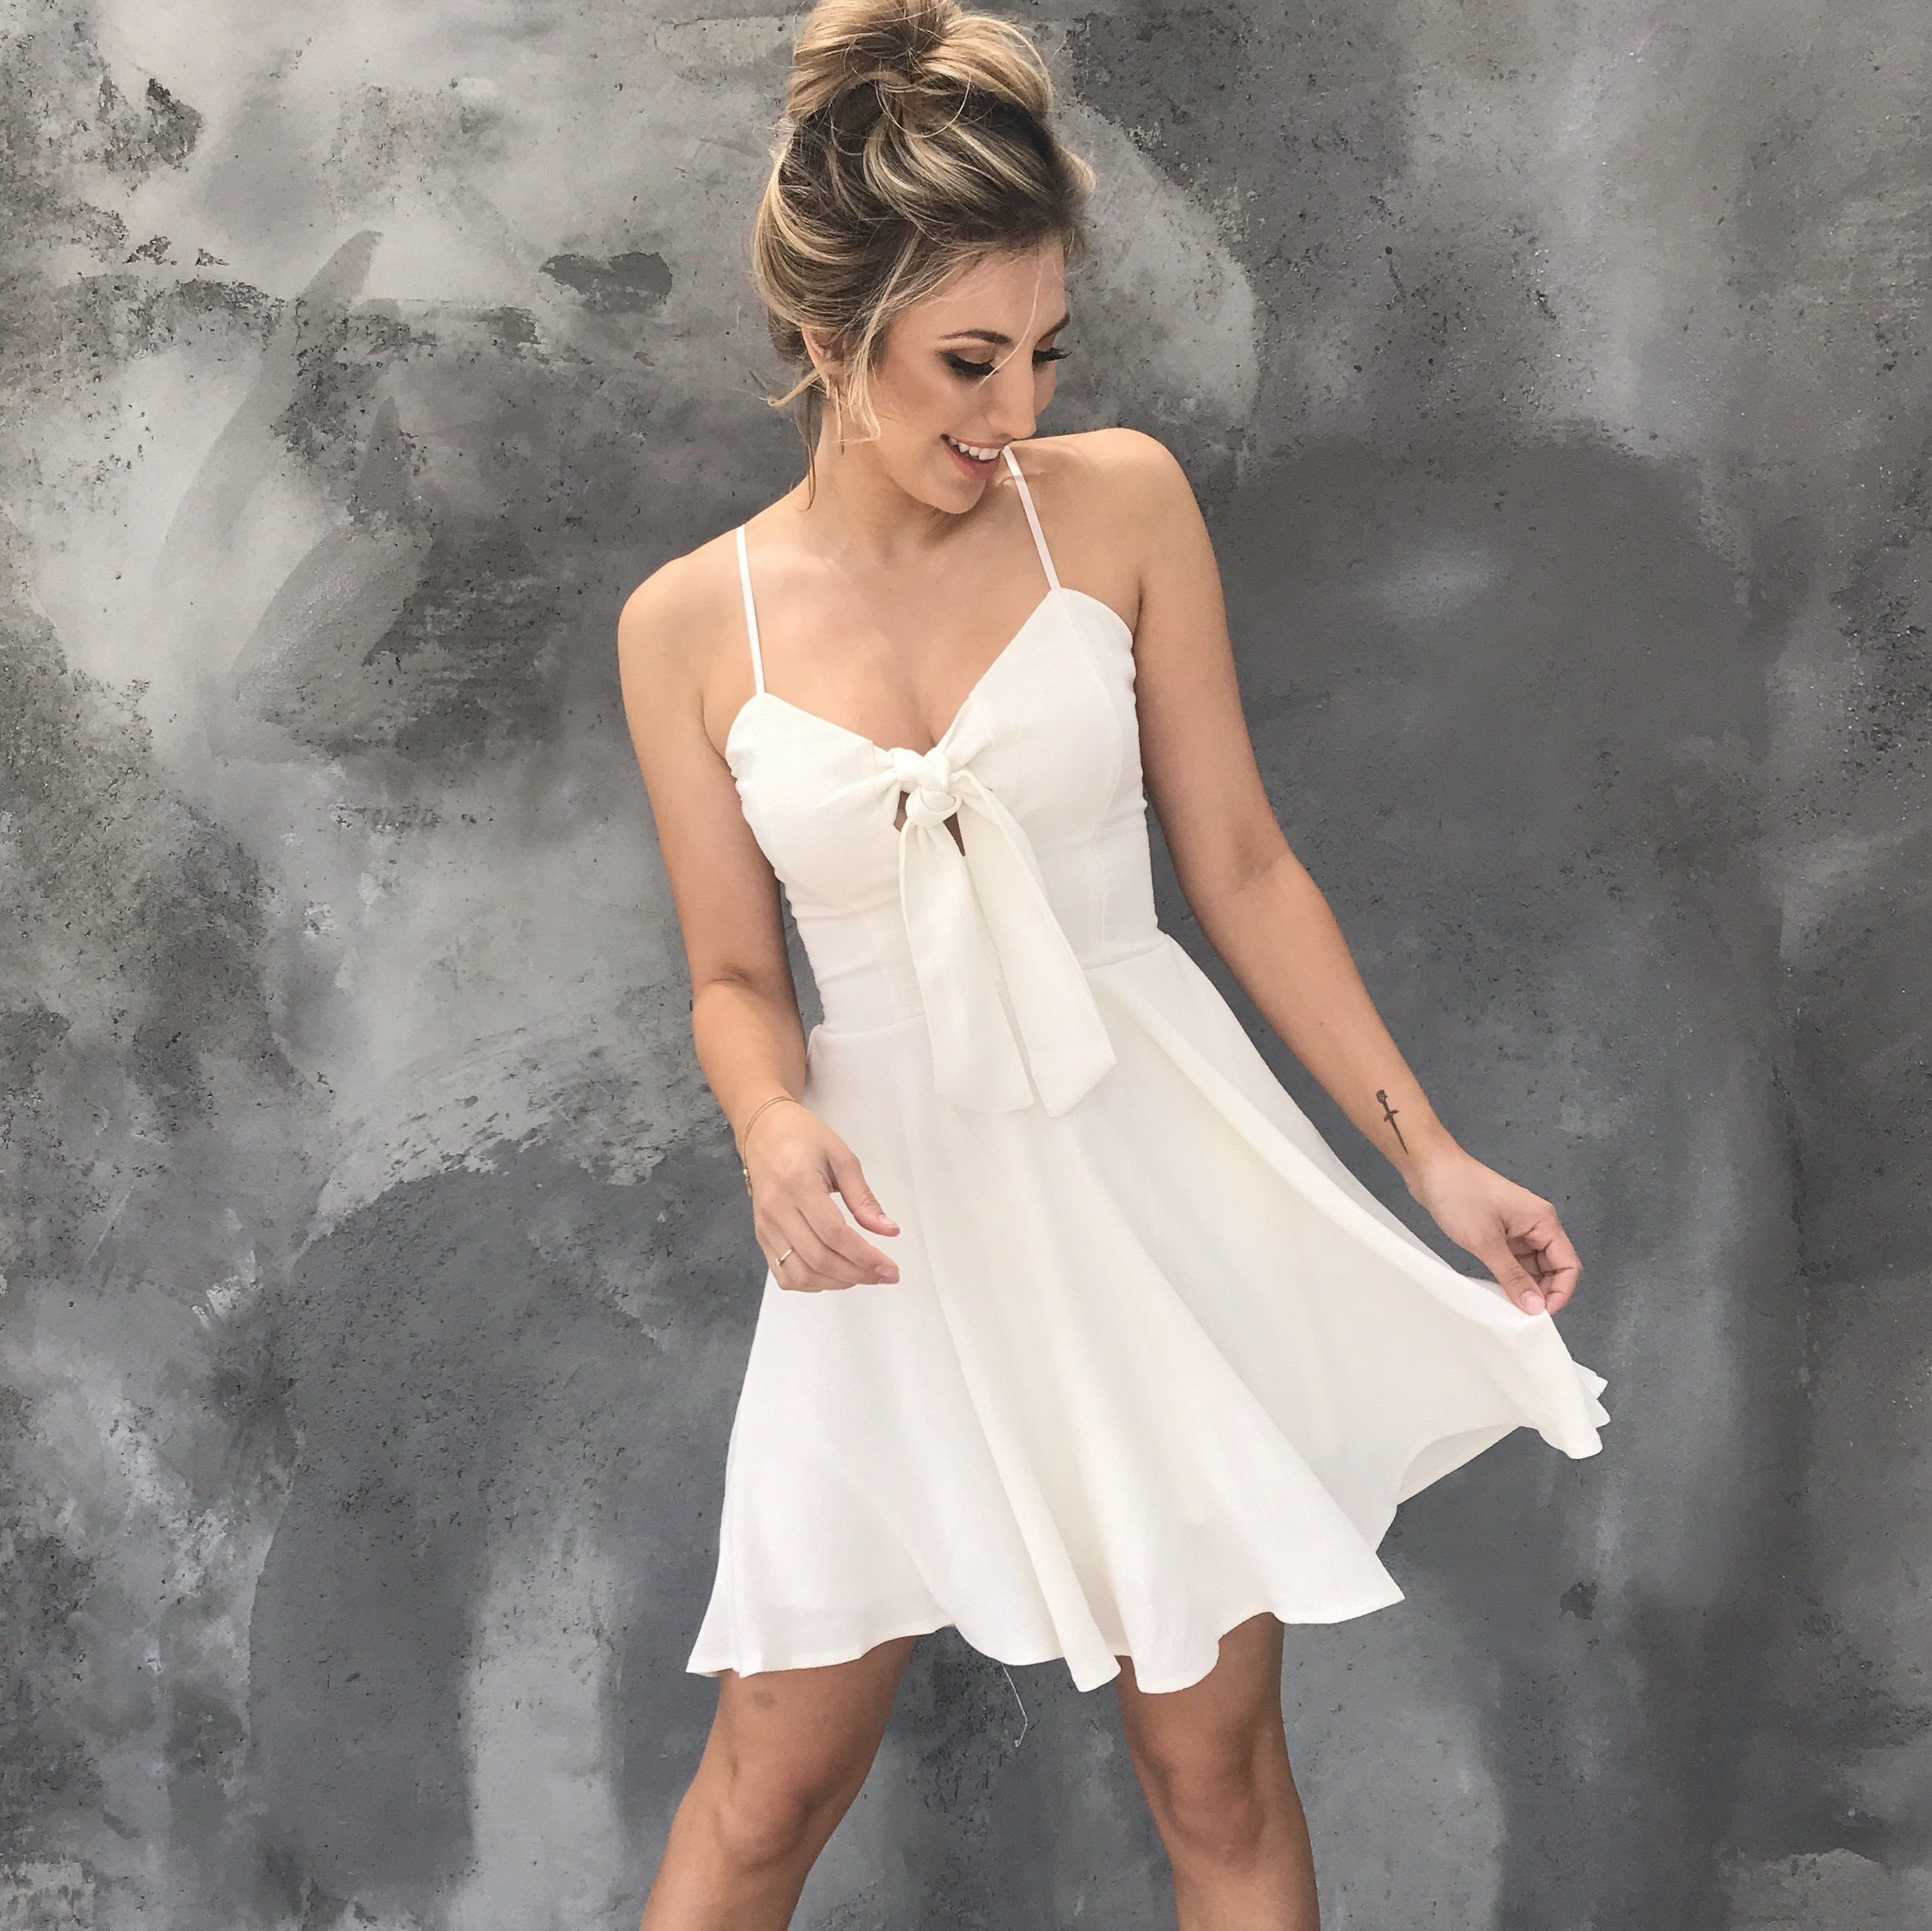 Hold You Close Linen Skater Dress In Ivory White Short Dress Cute White Dress Flowy Dress Short [ 2606 x 2607 Pixel ]